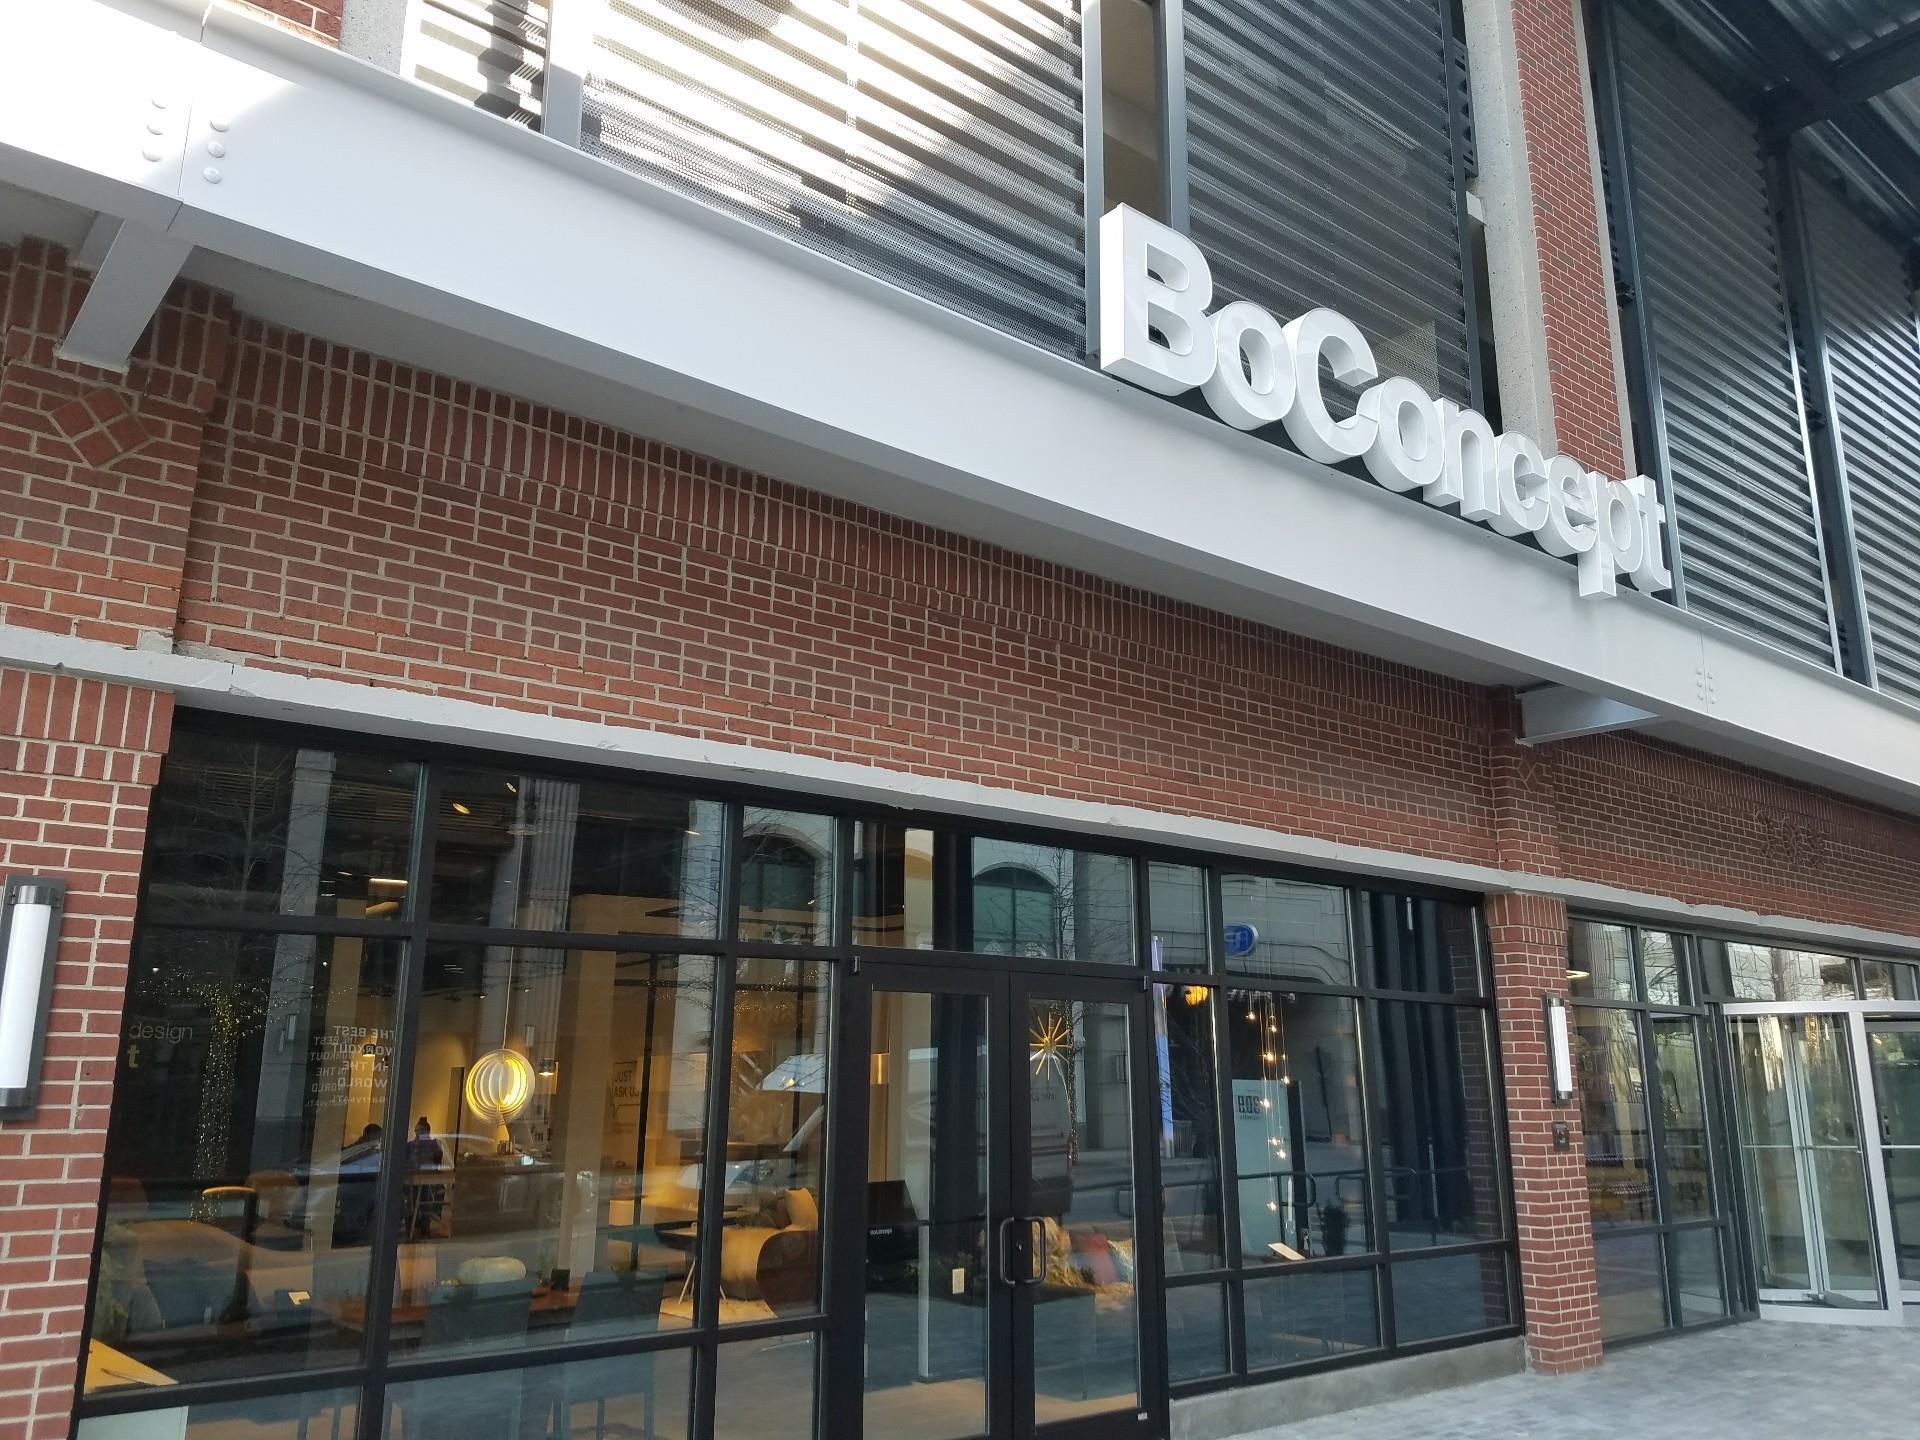 exterior of store with brick and white modern BoContept sign above entrance